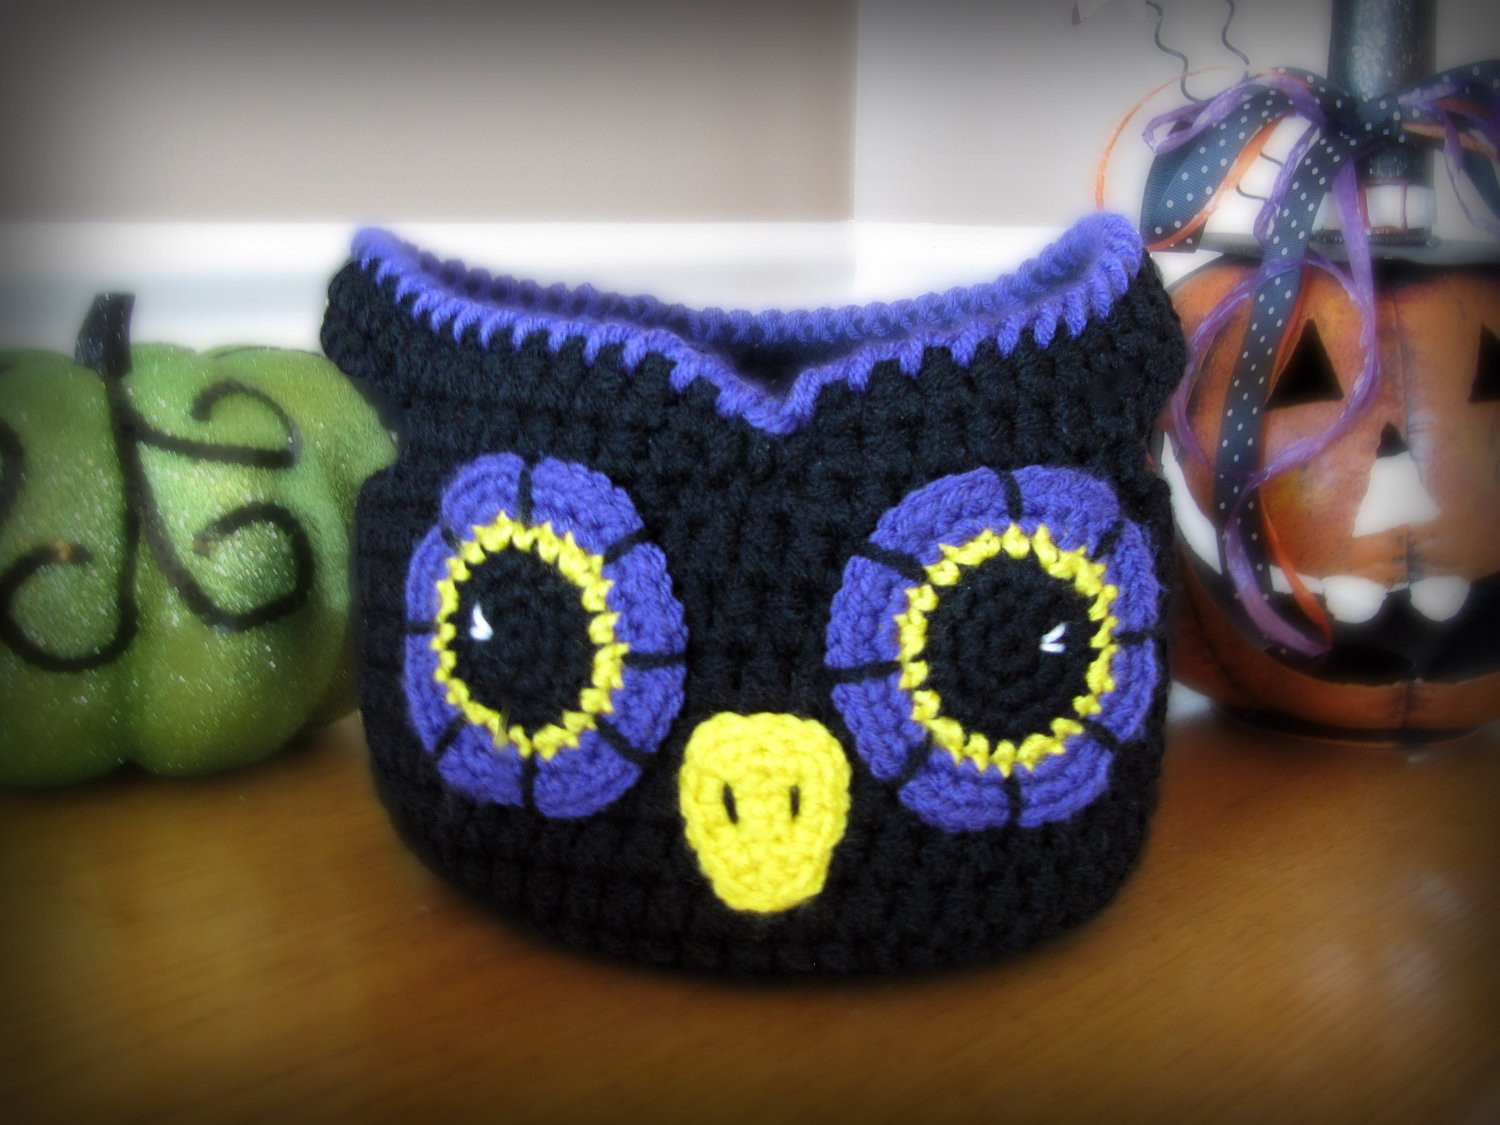 Inspirational Owl Basket Crochet Pattern Instant Bag Bowl Crochet Owl Basket Of Brilliant 47 Photos Crochet Owl Basket